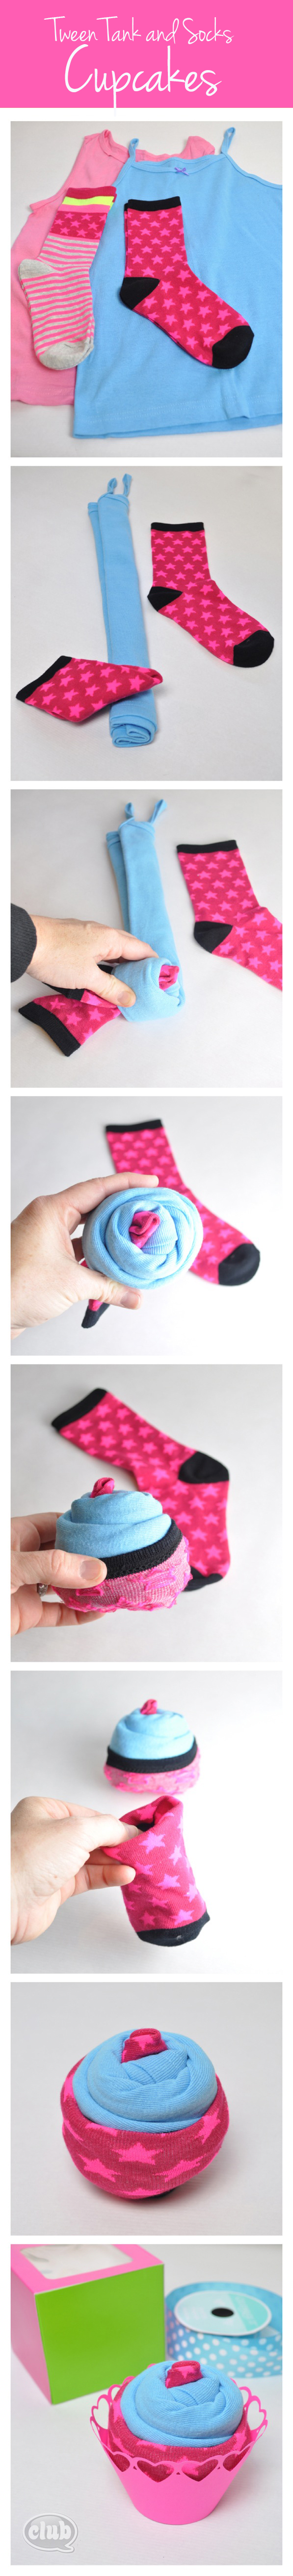 Cupcake Gift Box for Tween Girl DIY